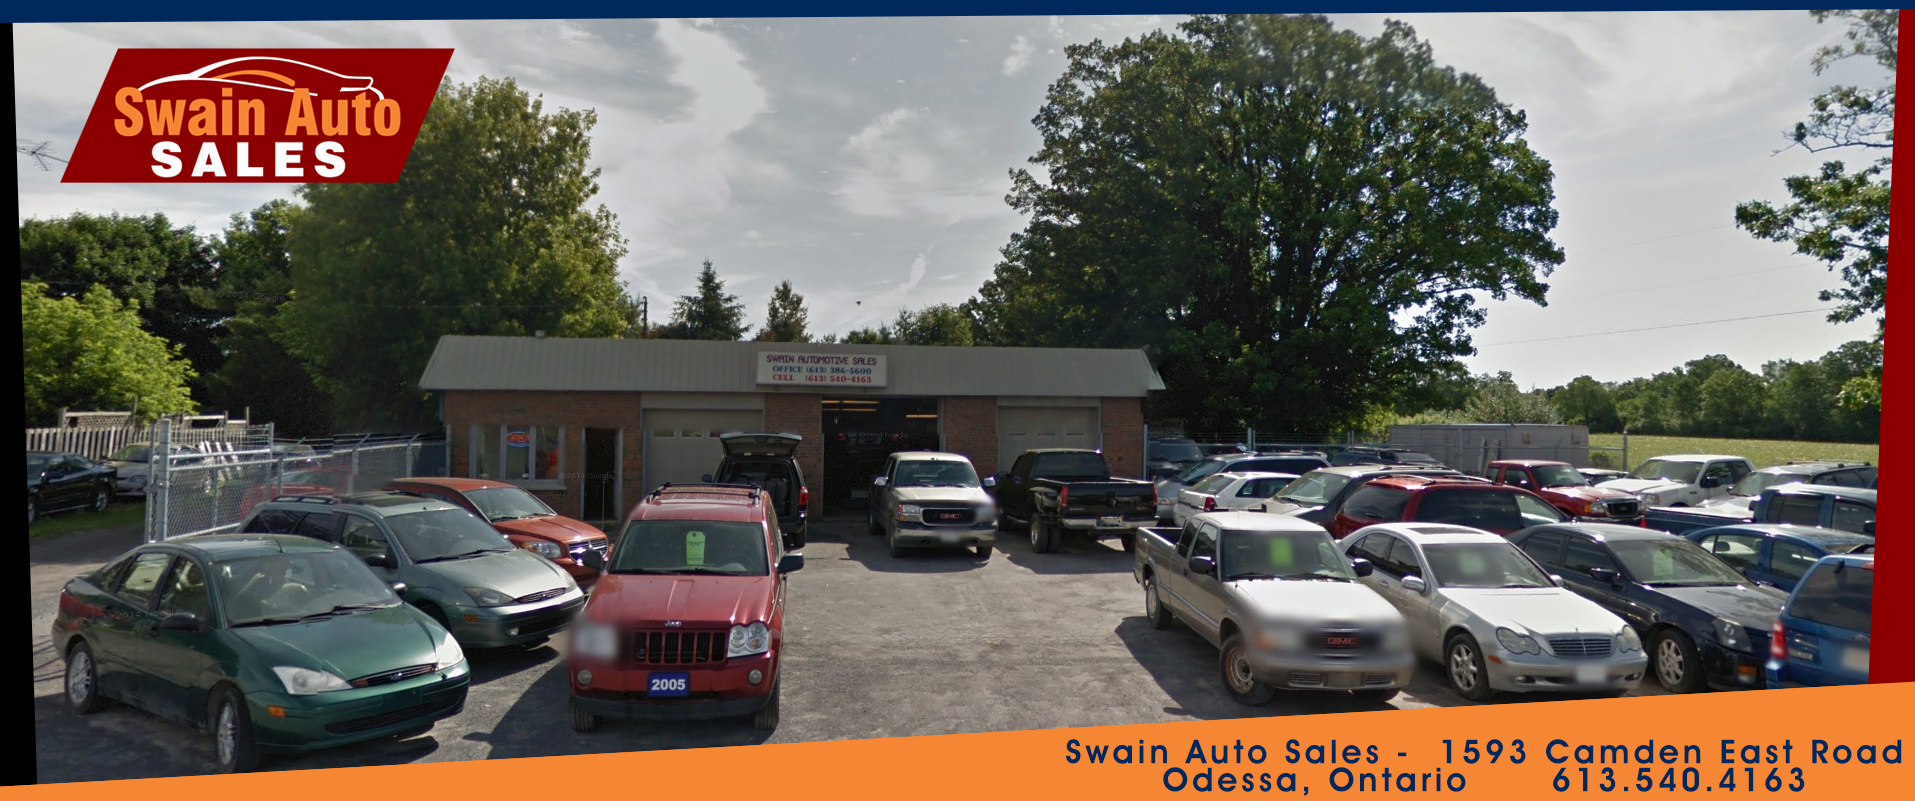 Swain Auto Sales in Odessa Ontario and Used Car Sales and quality auto sales